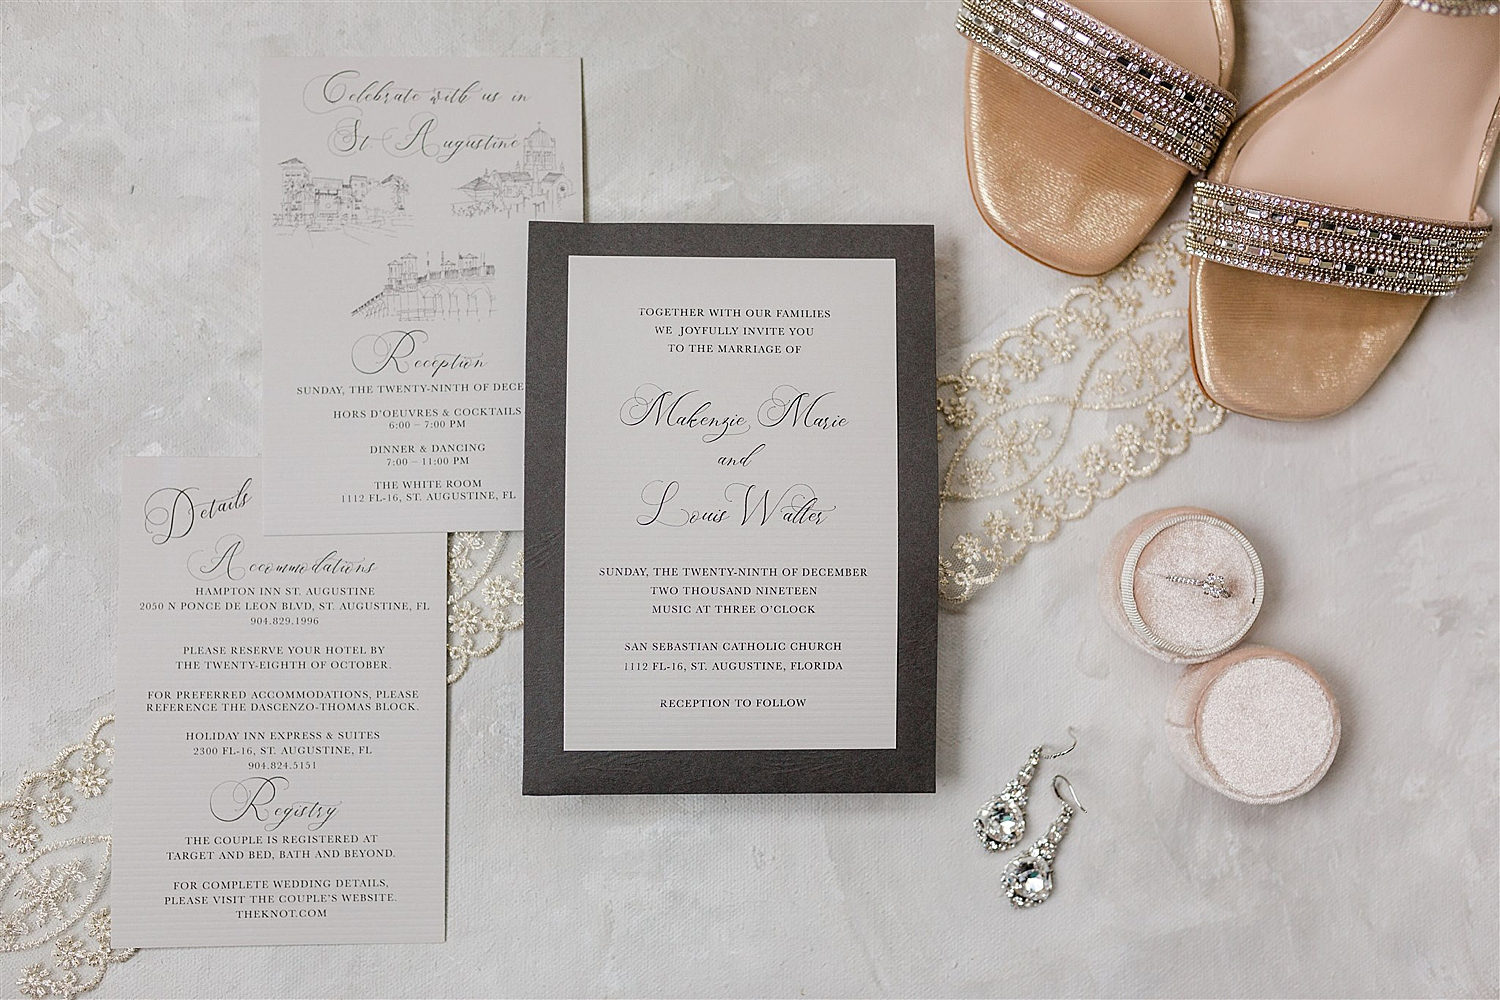 Detail of calligraphy and jewelry with wedding invitation